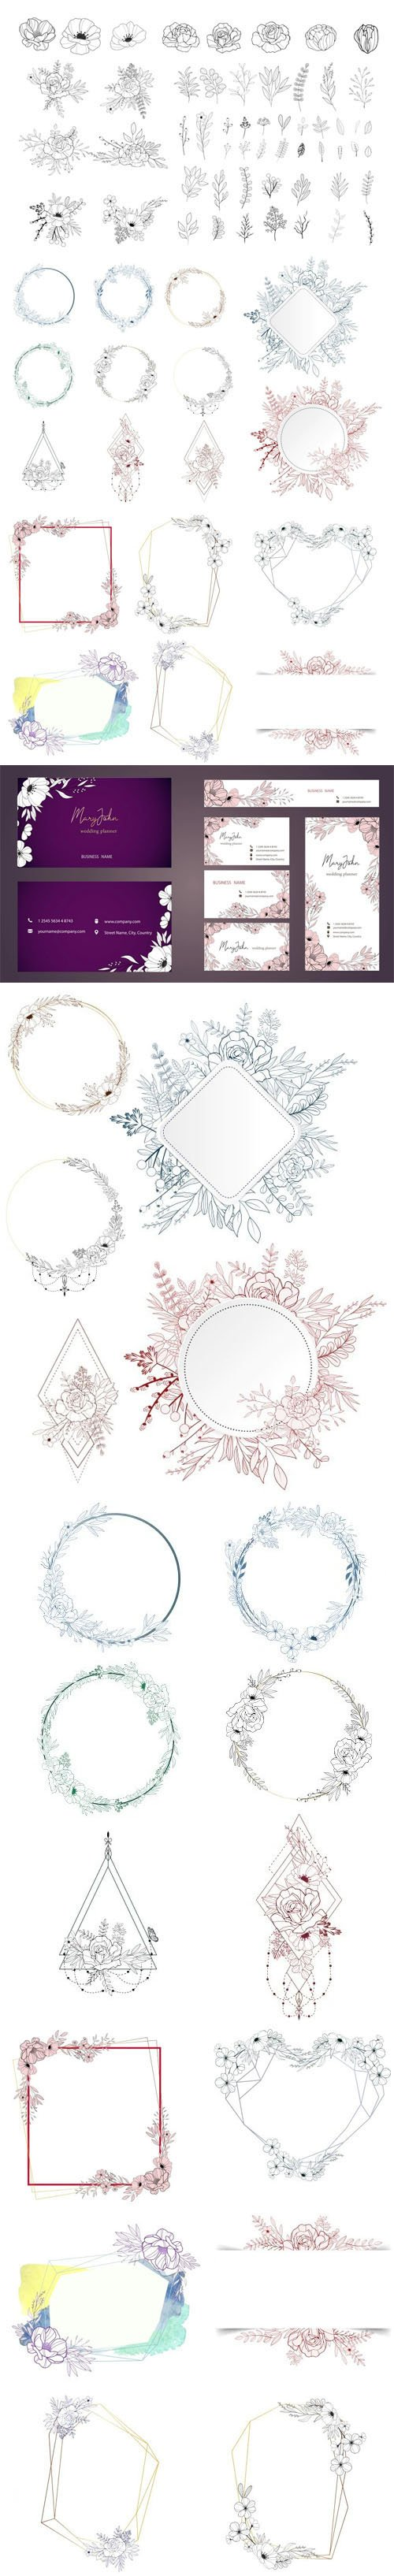 Hand Drawn Floral Vector Collection